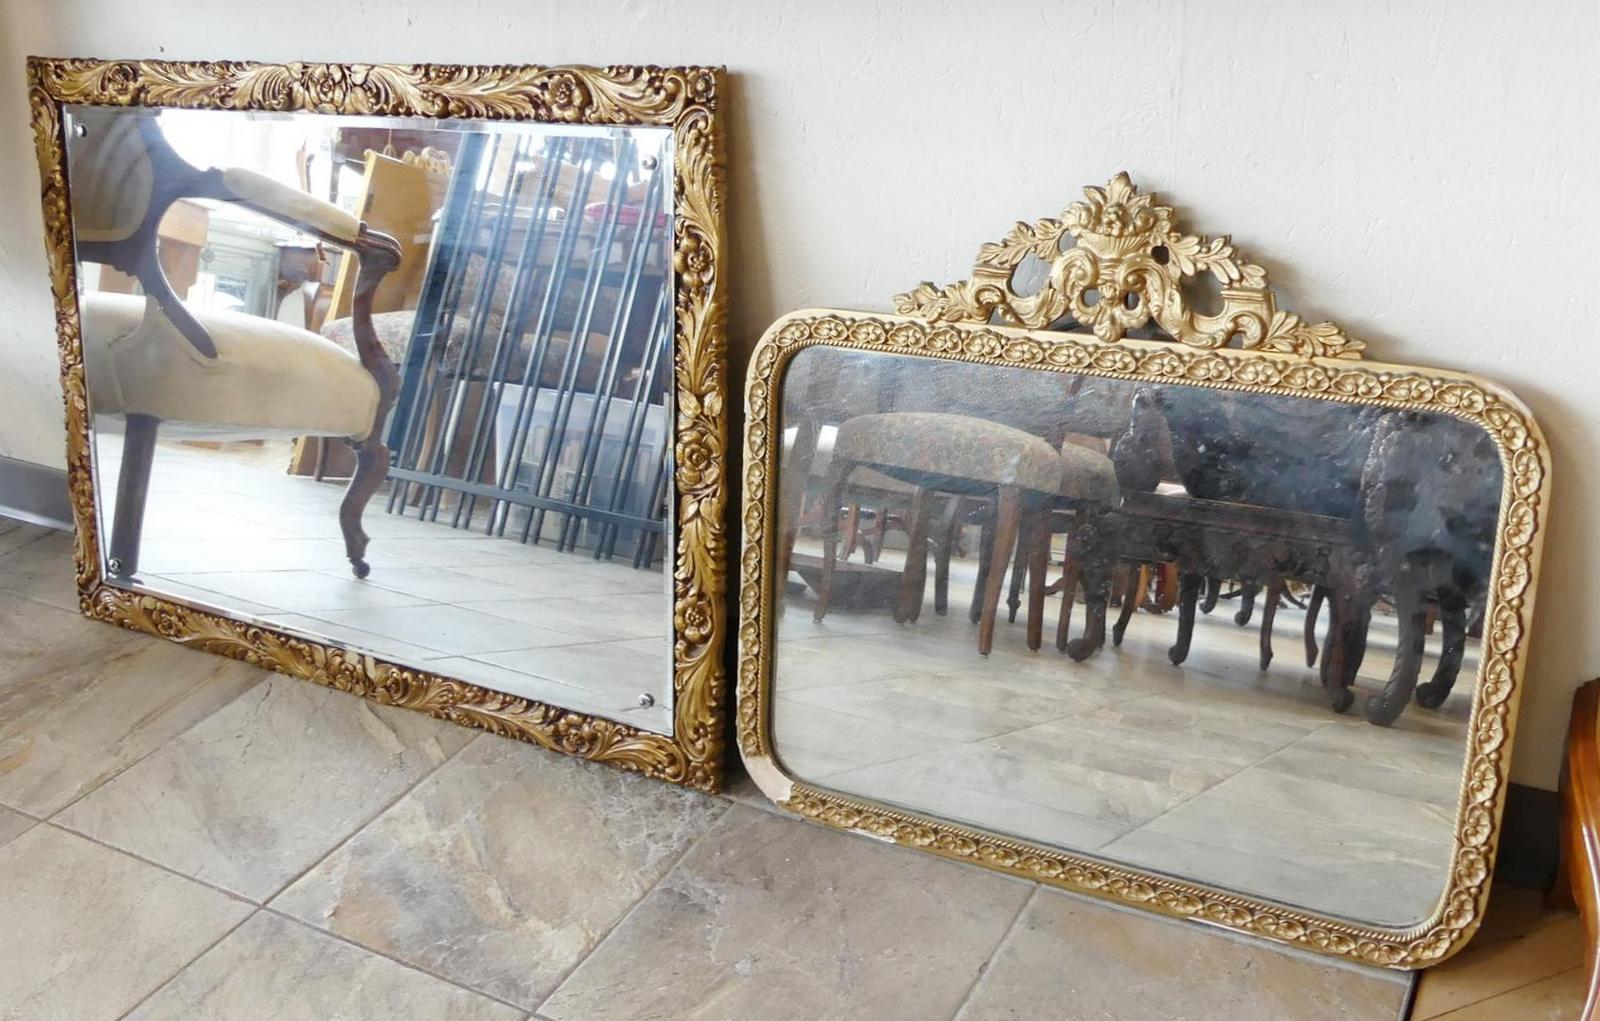 TWO GILTWOOD WALL MIRRORS